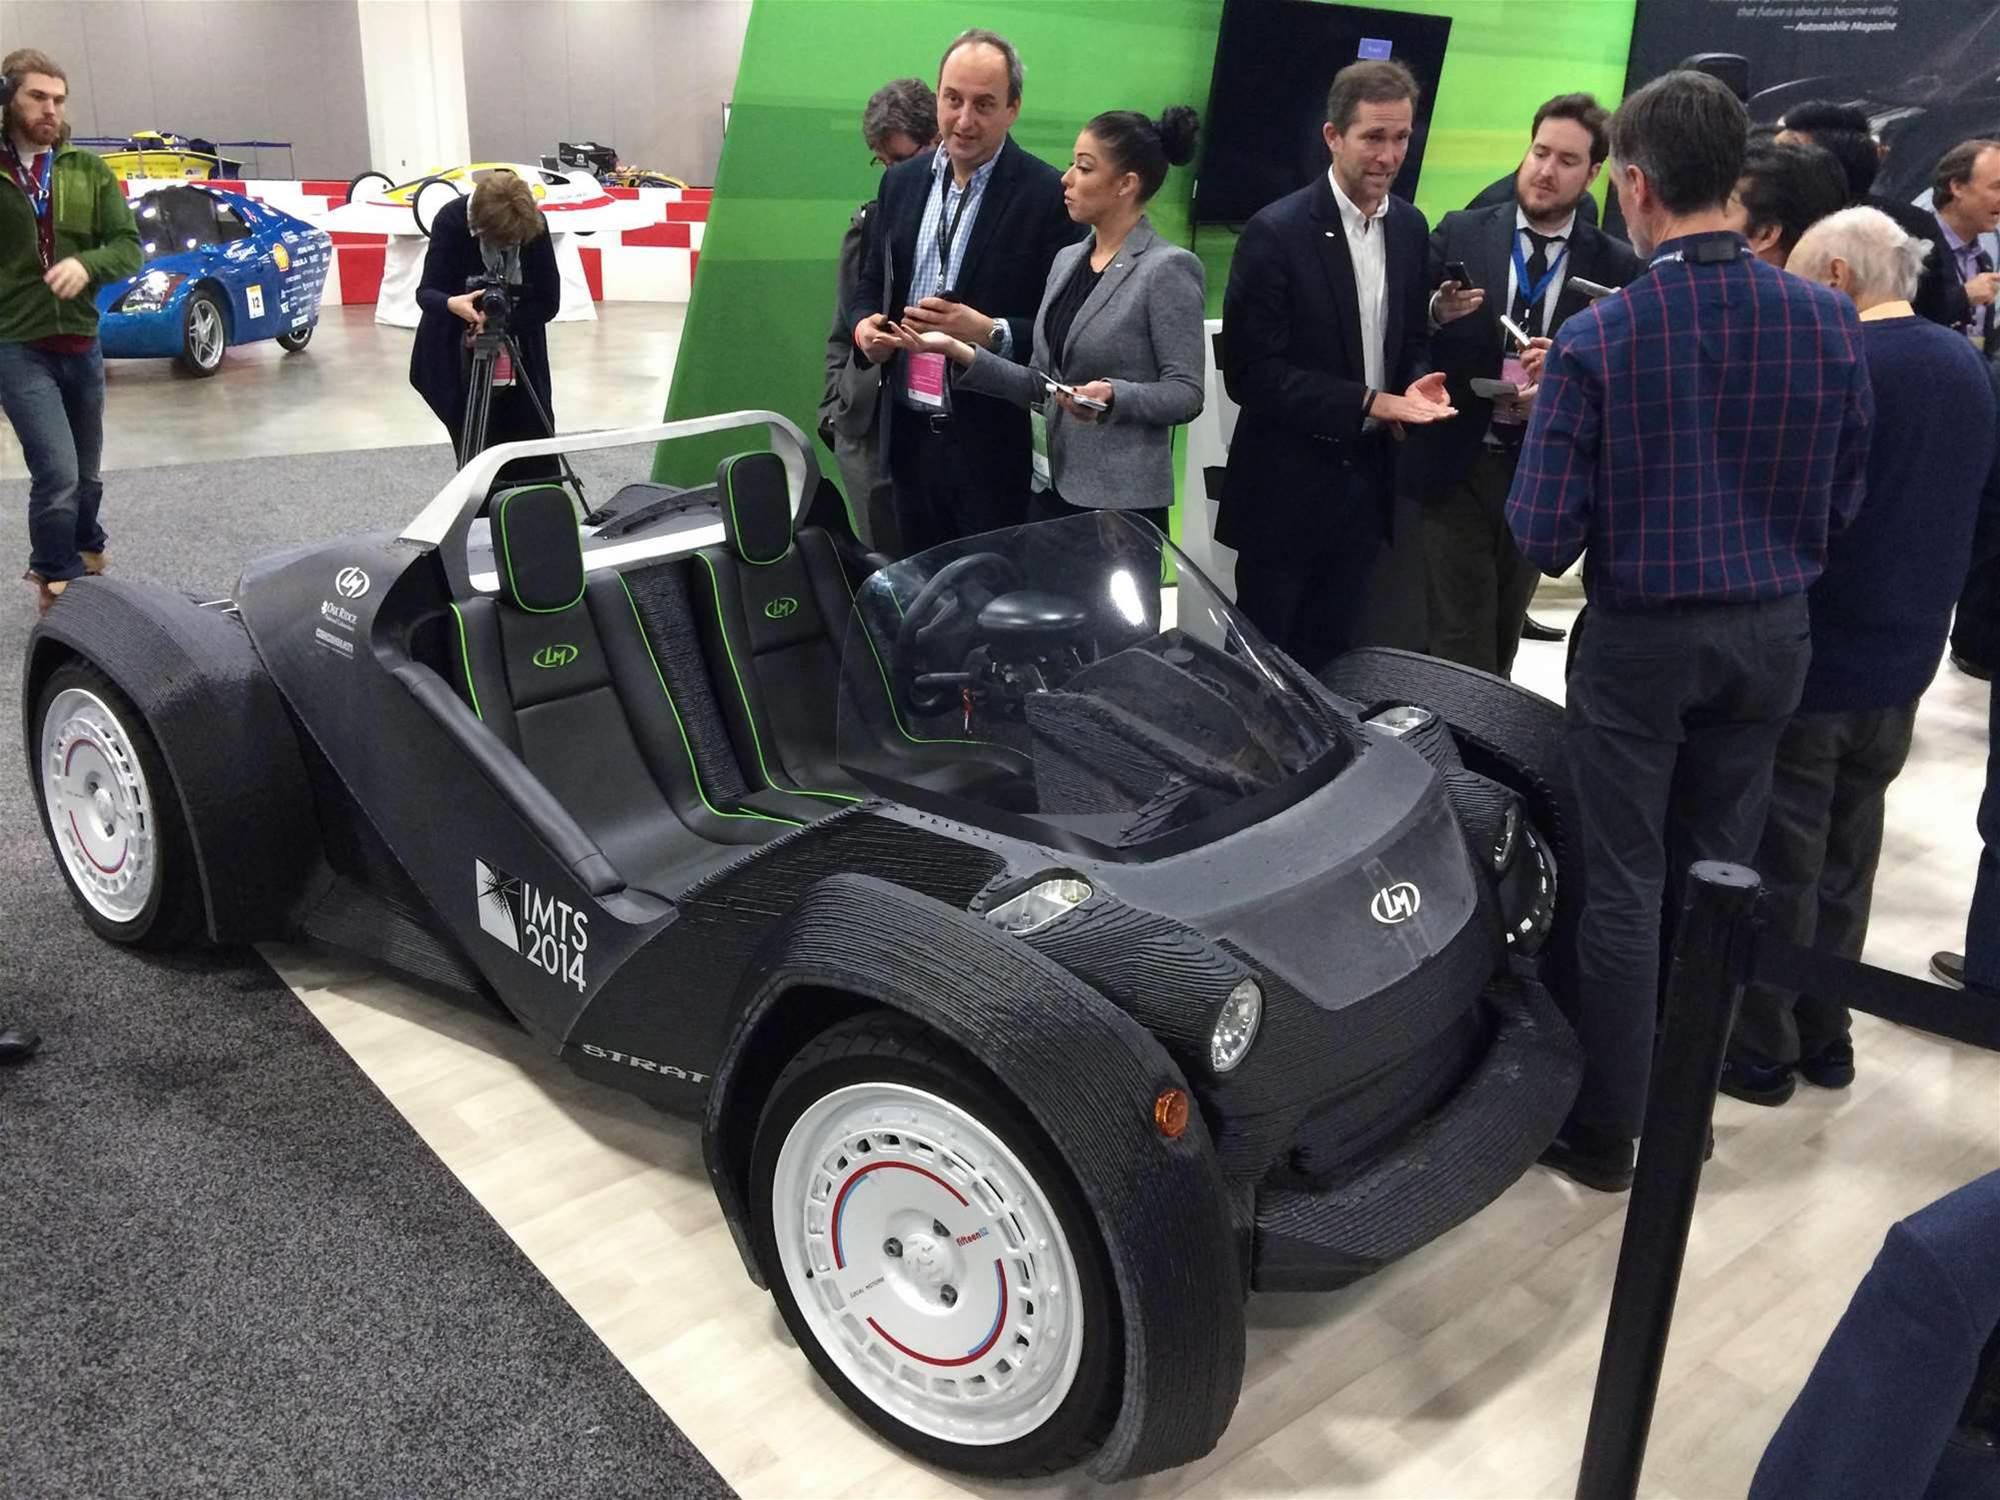 2015 Detroit Auto Show: You Might Be Able To Buy 3D–Printed Cars In A Year